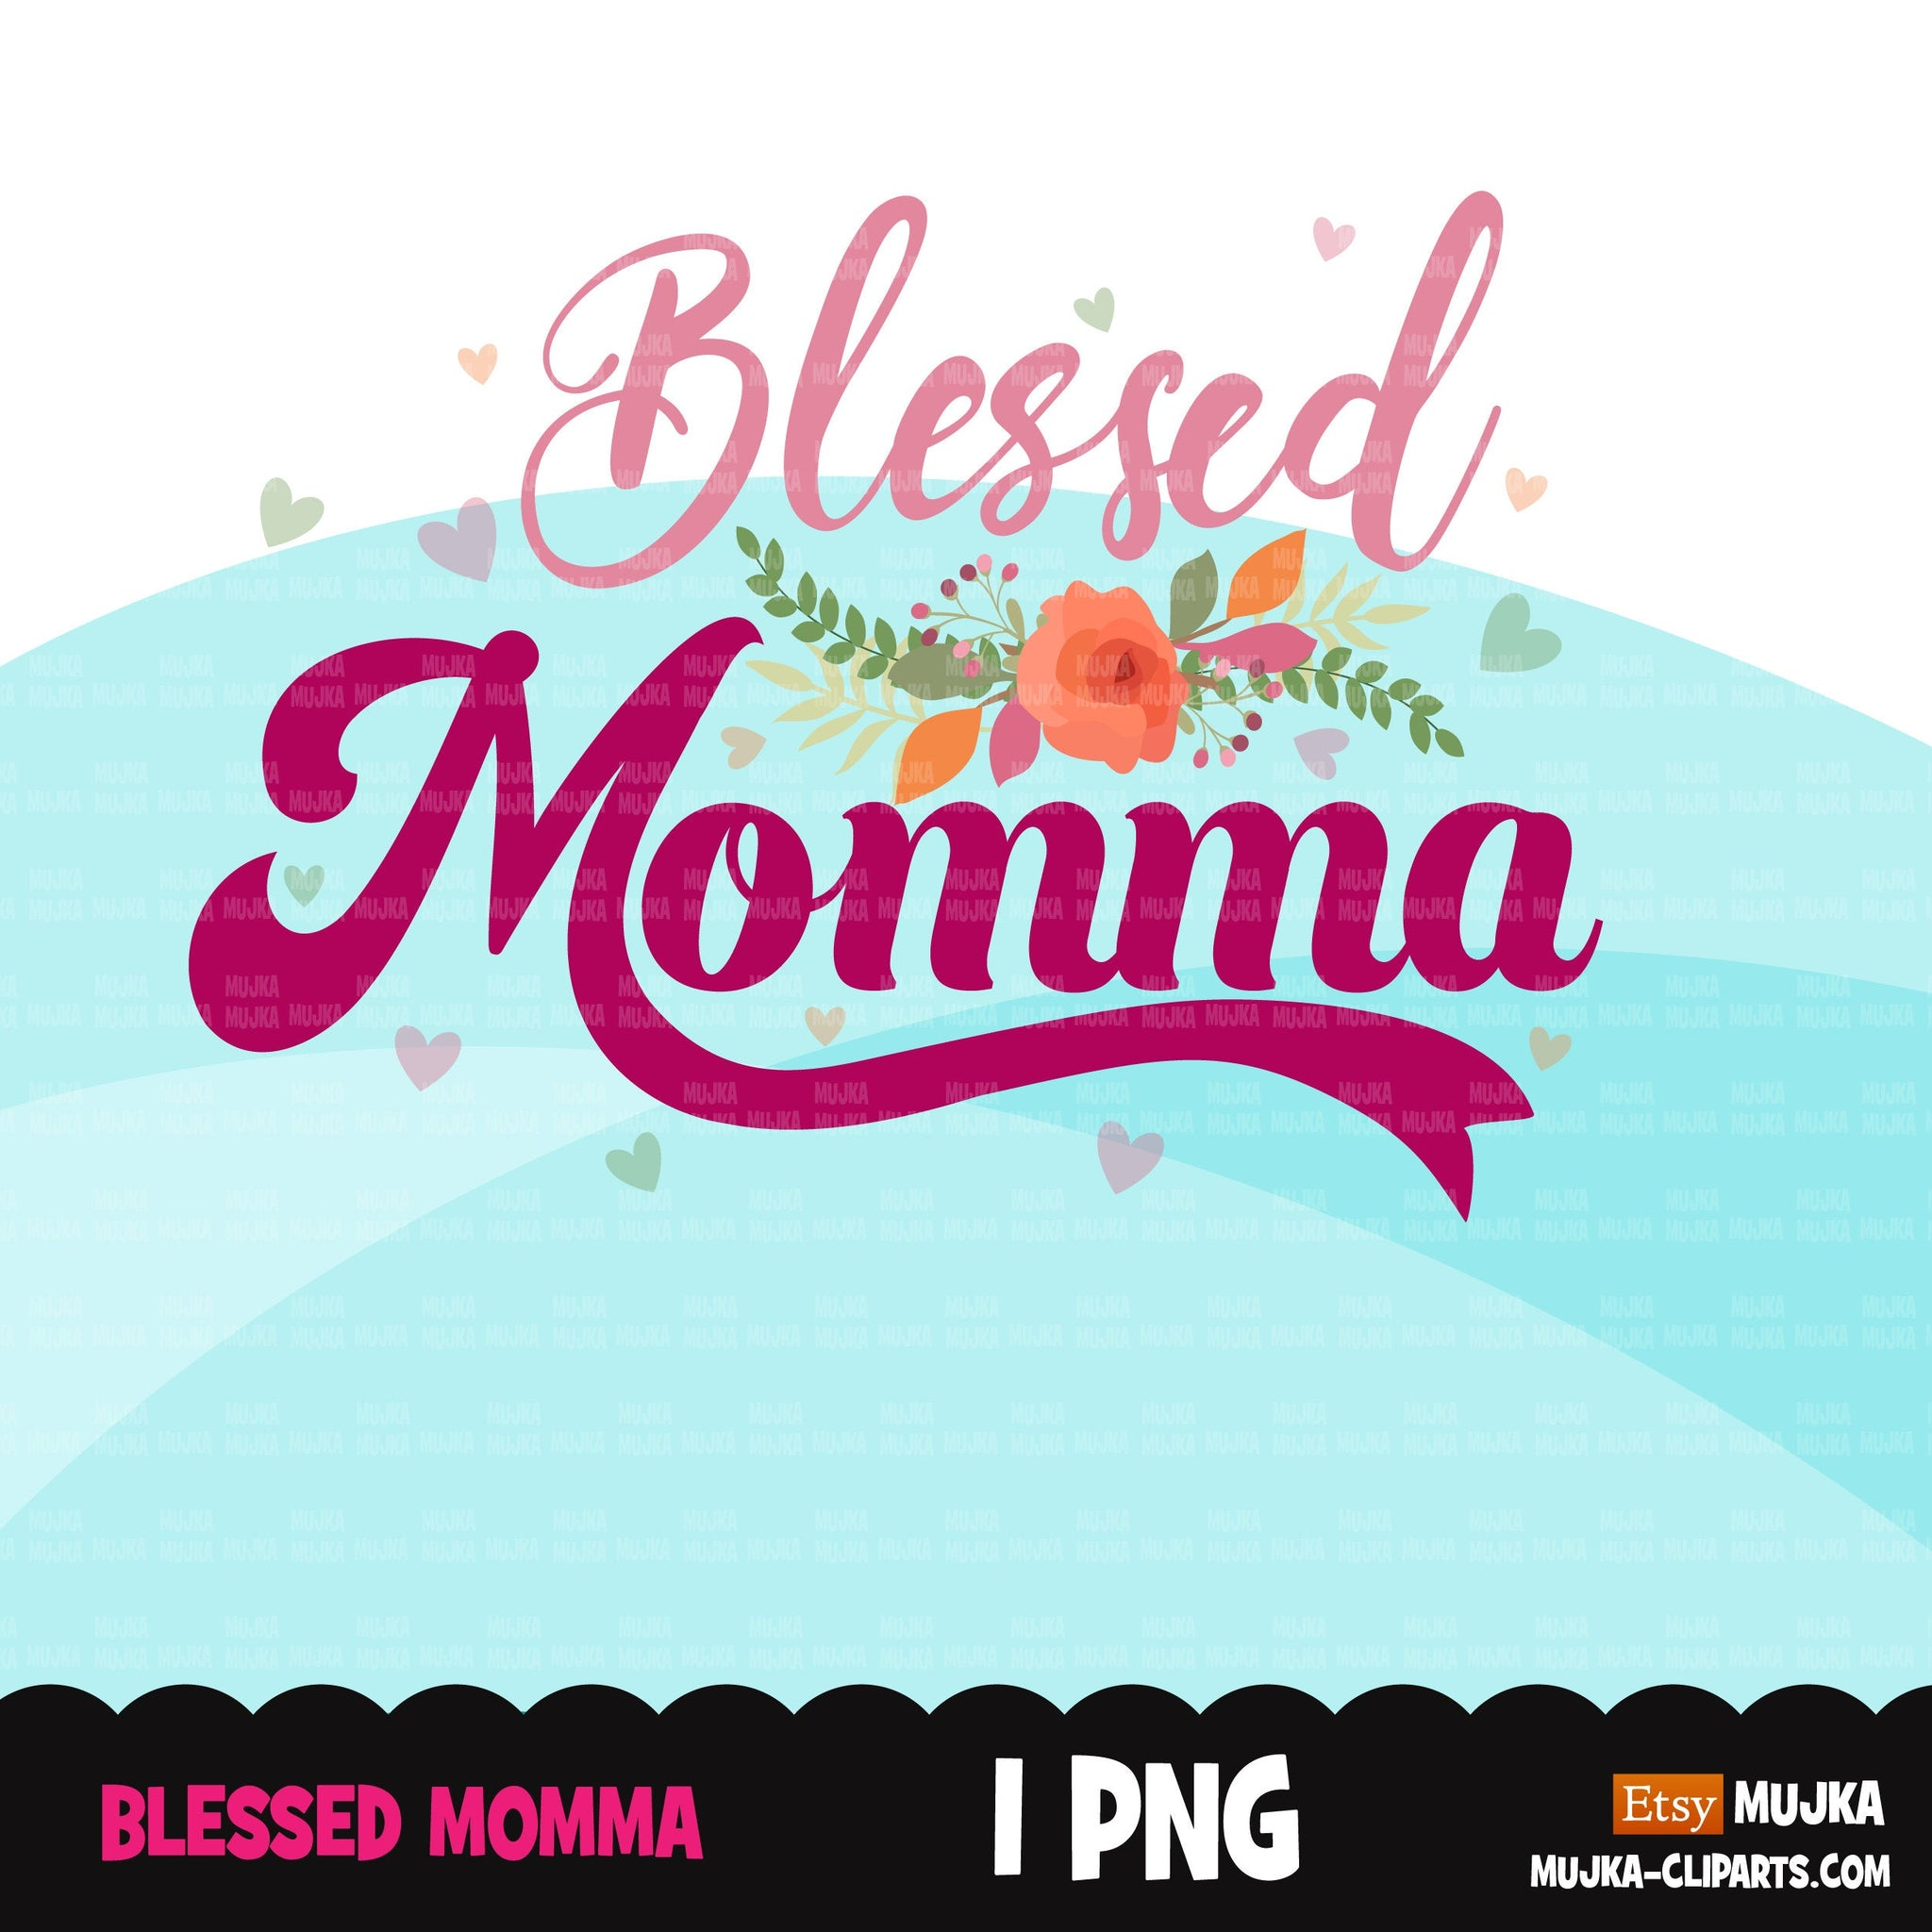 Blessed Momma clipart, blessed mom sublimation designs digital download, blessed mom Shirt designs, mothers day designs for cricut downloads